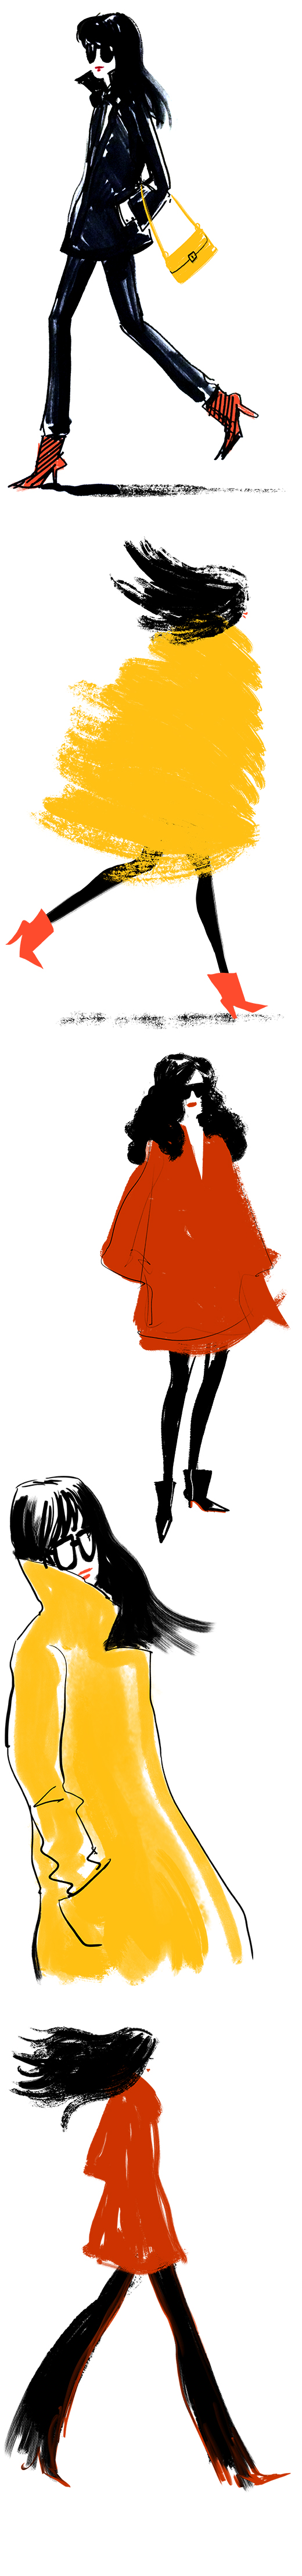 illustration-paris-fashion-week-2016